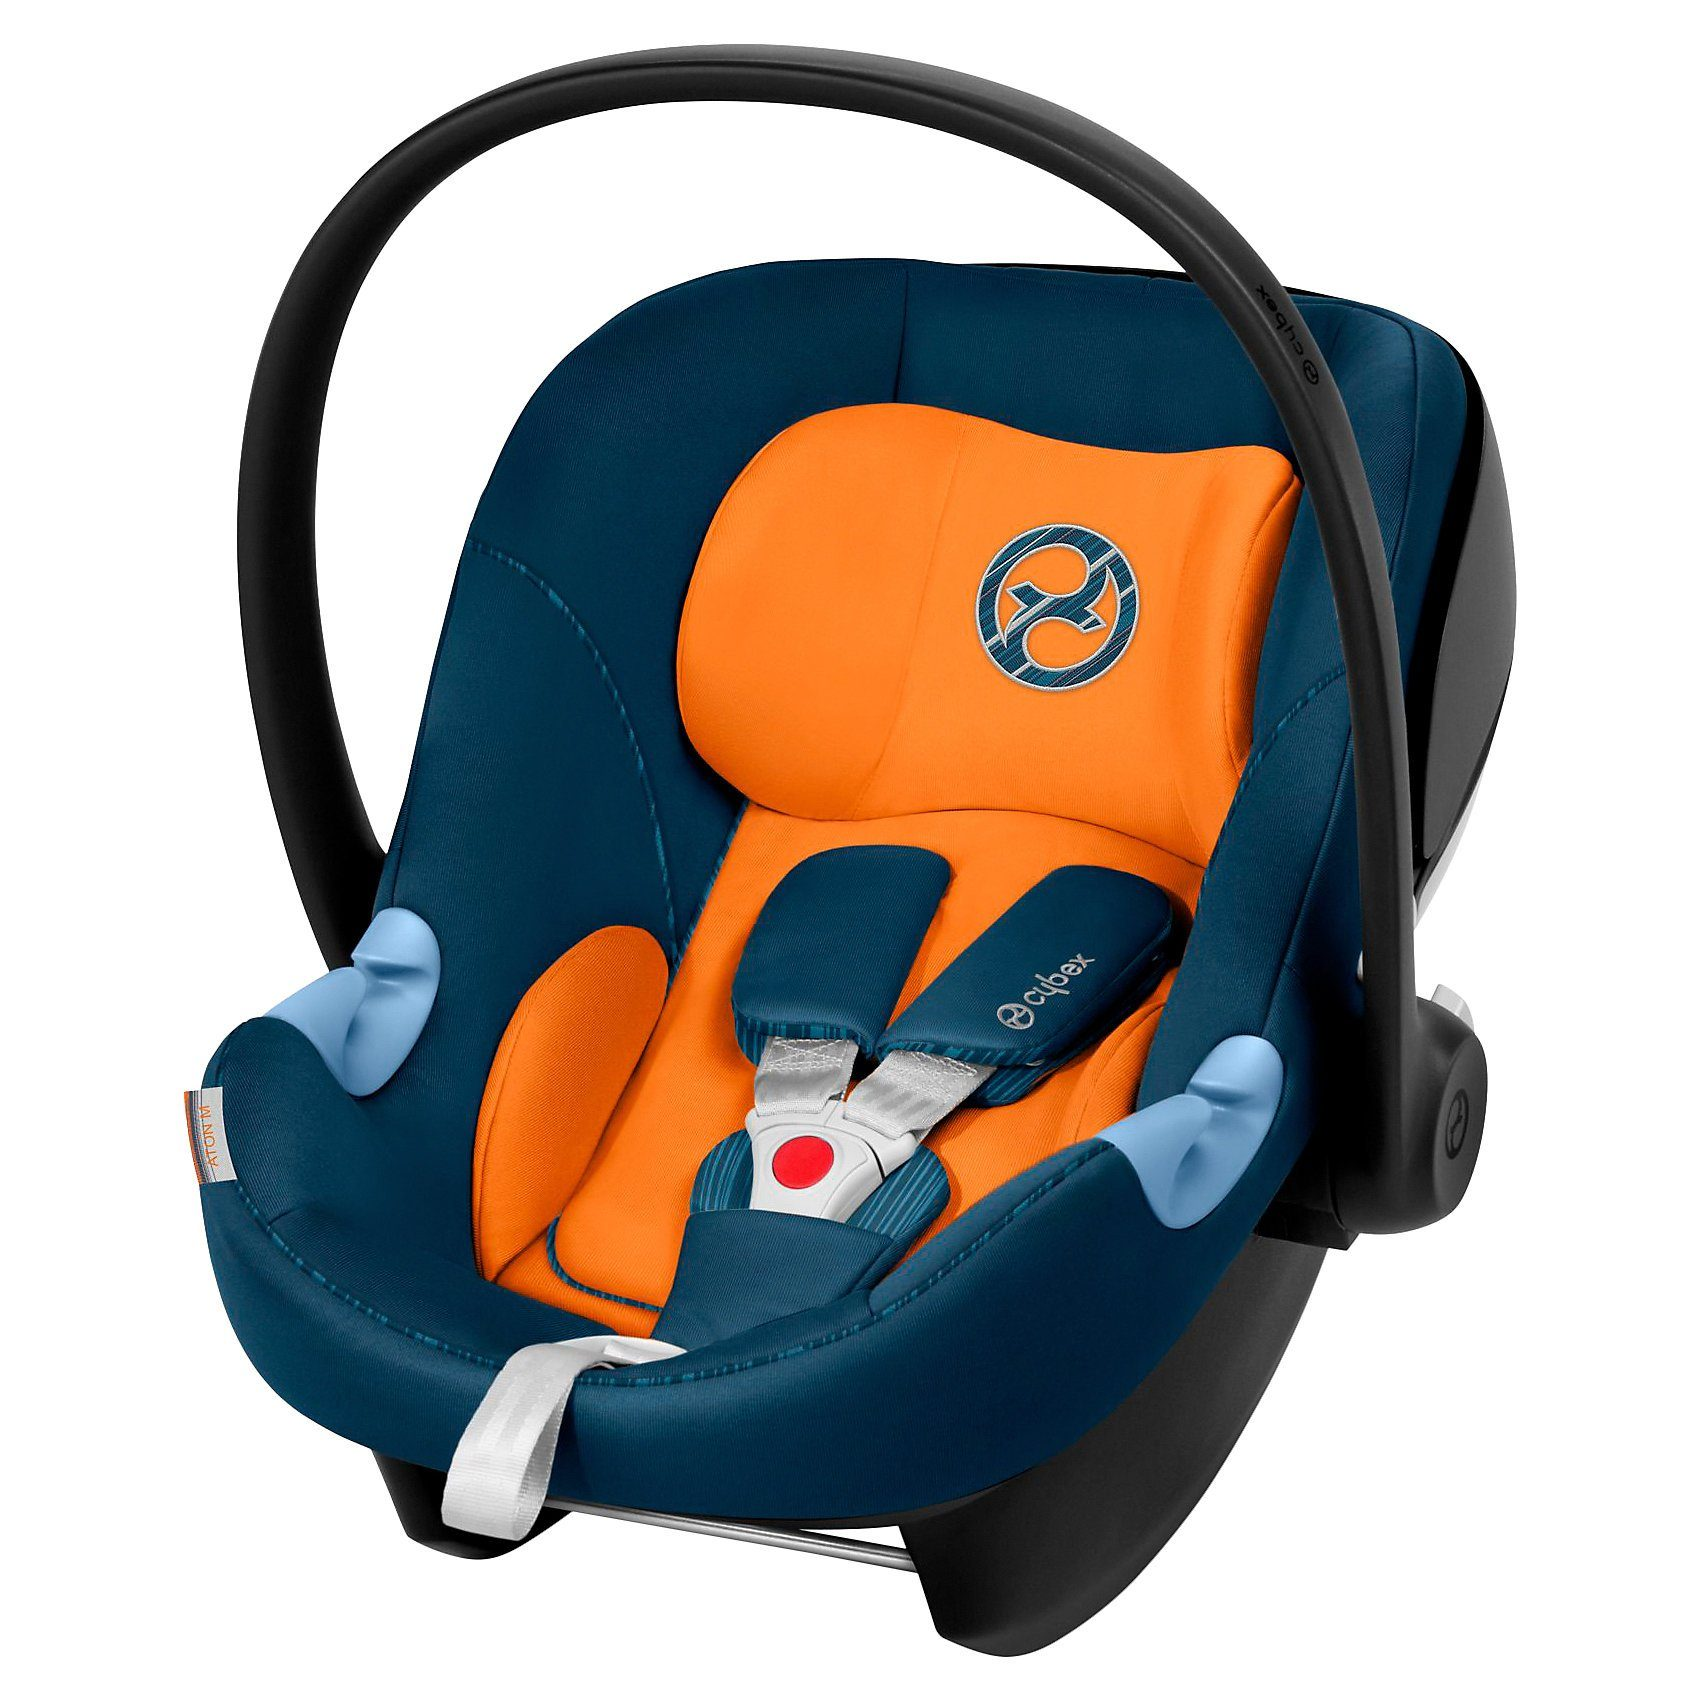 Cybex Babyschale Aton M, Gold-Line, Tropical Blue, 2019